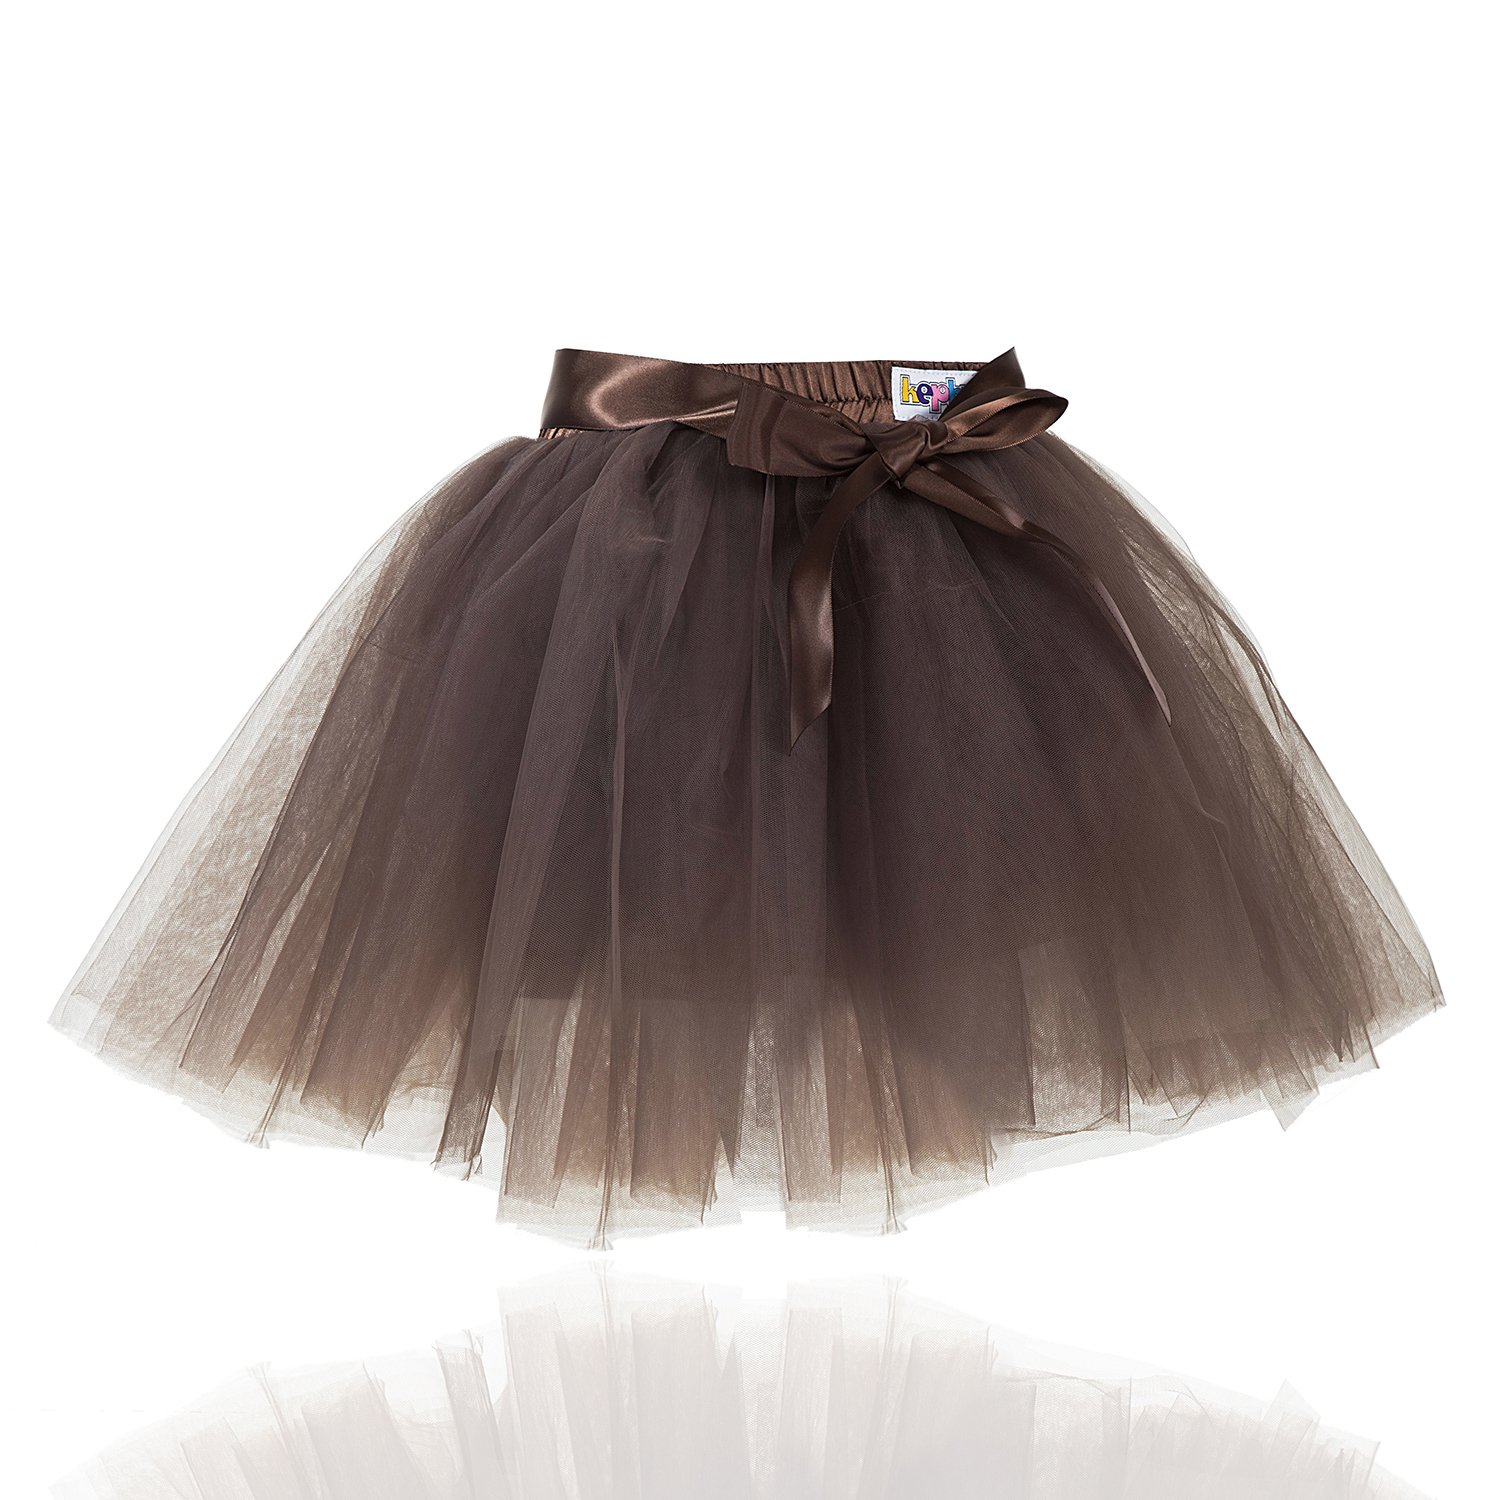 Steampunk Kids Costumes | Girl, Boy, Baby, Toddler Little Girl Tutu Skirt A Line 7 Layers Tulle Skirt Party Princess Dance Tutu Dress (3T -10T) $15.99 AT vintagedancer.com